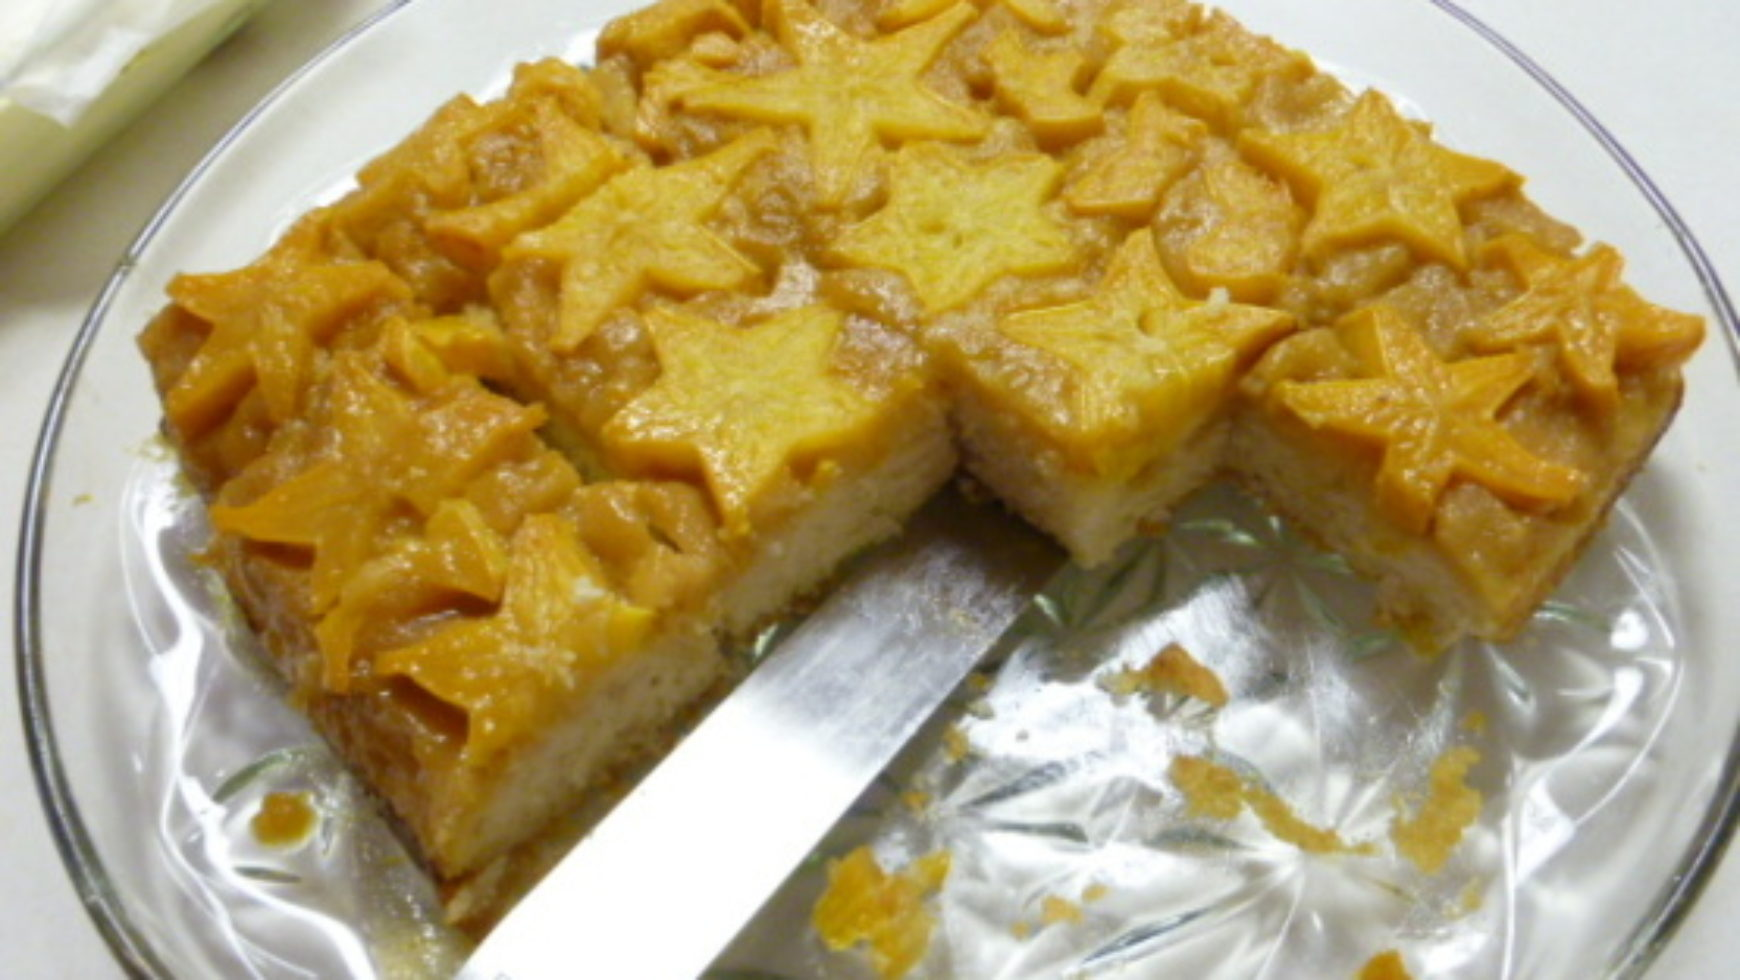 Star Fruit Upside Down Cake